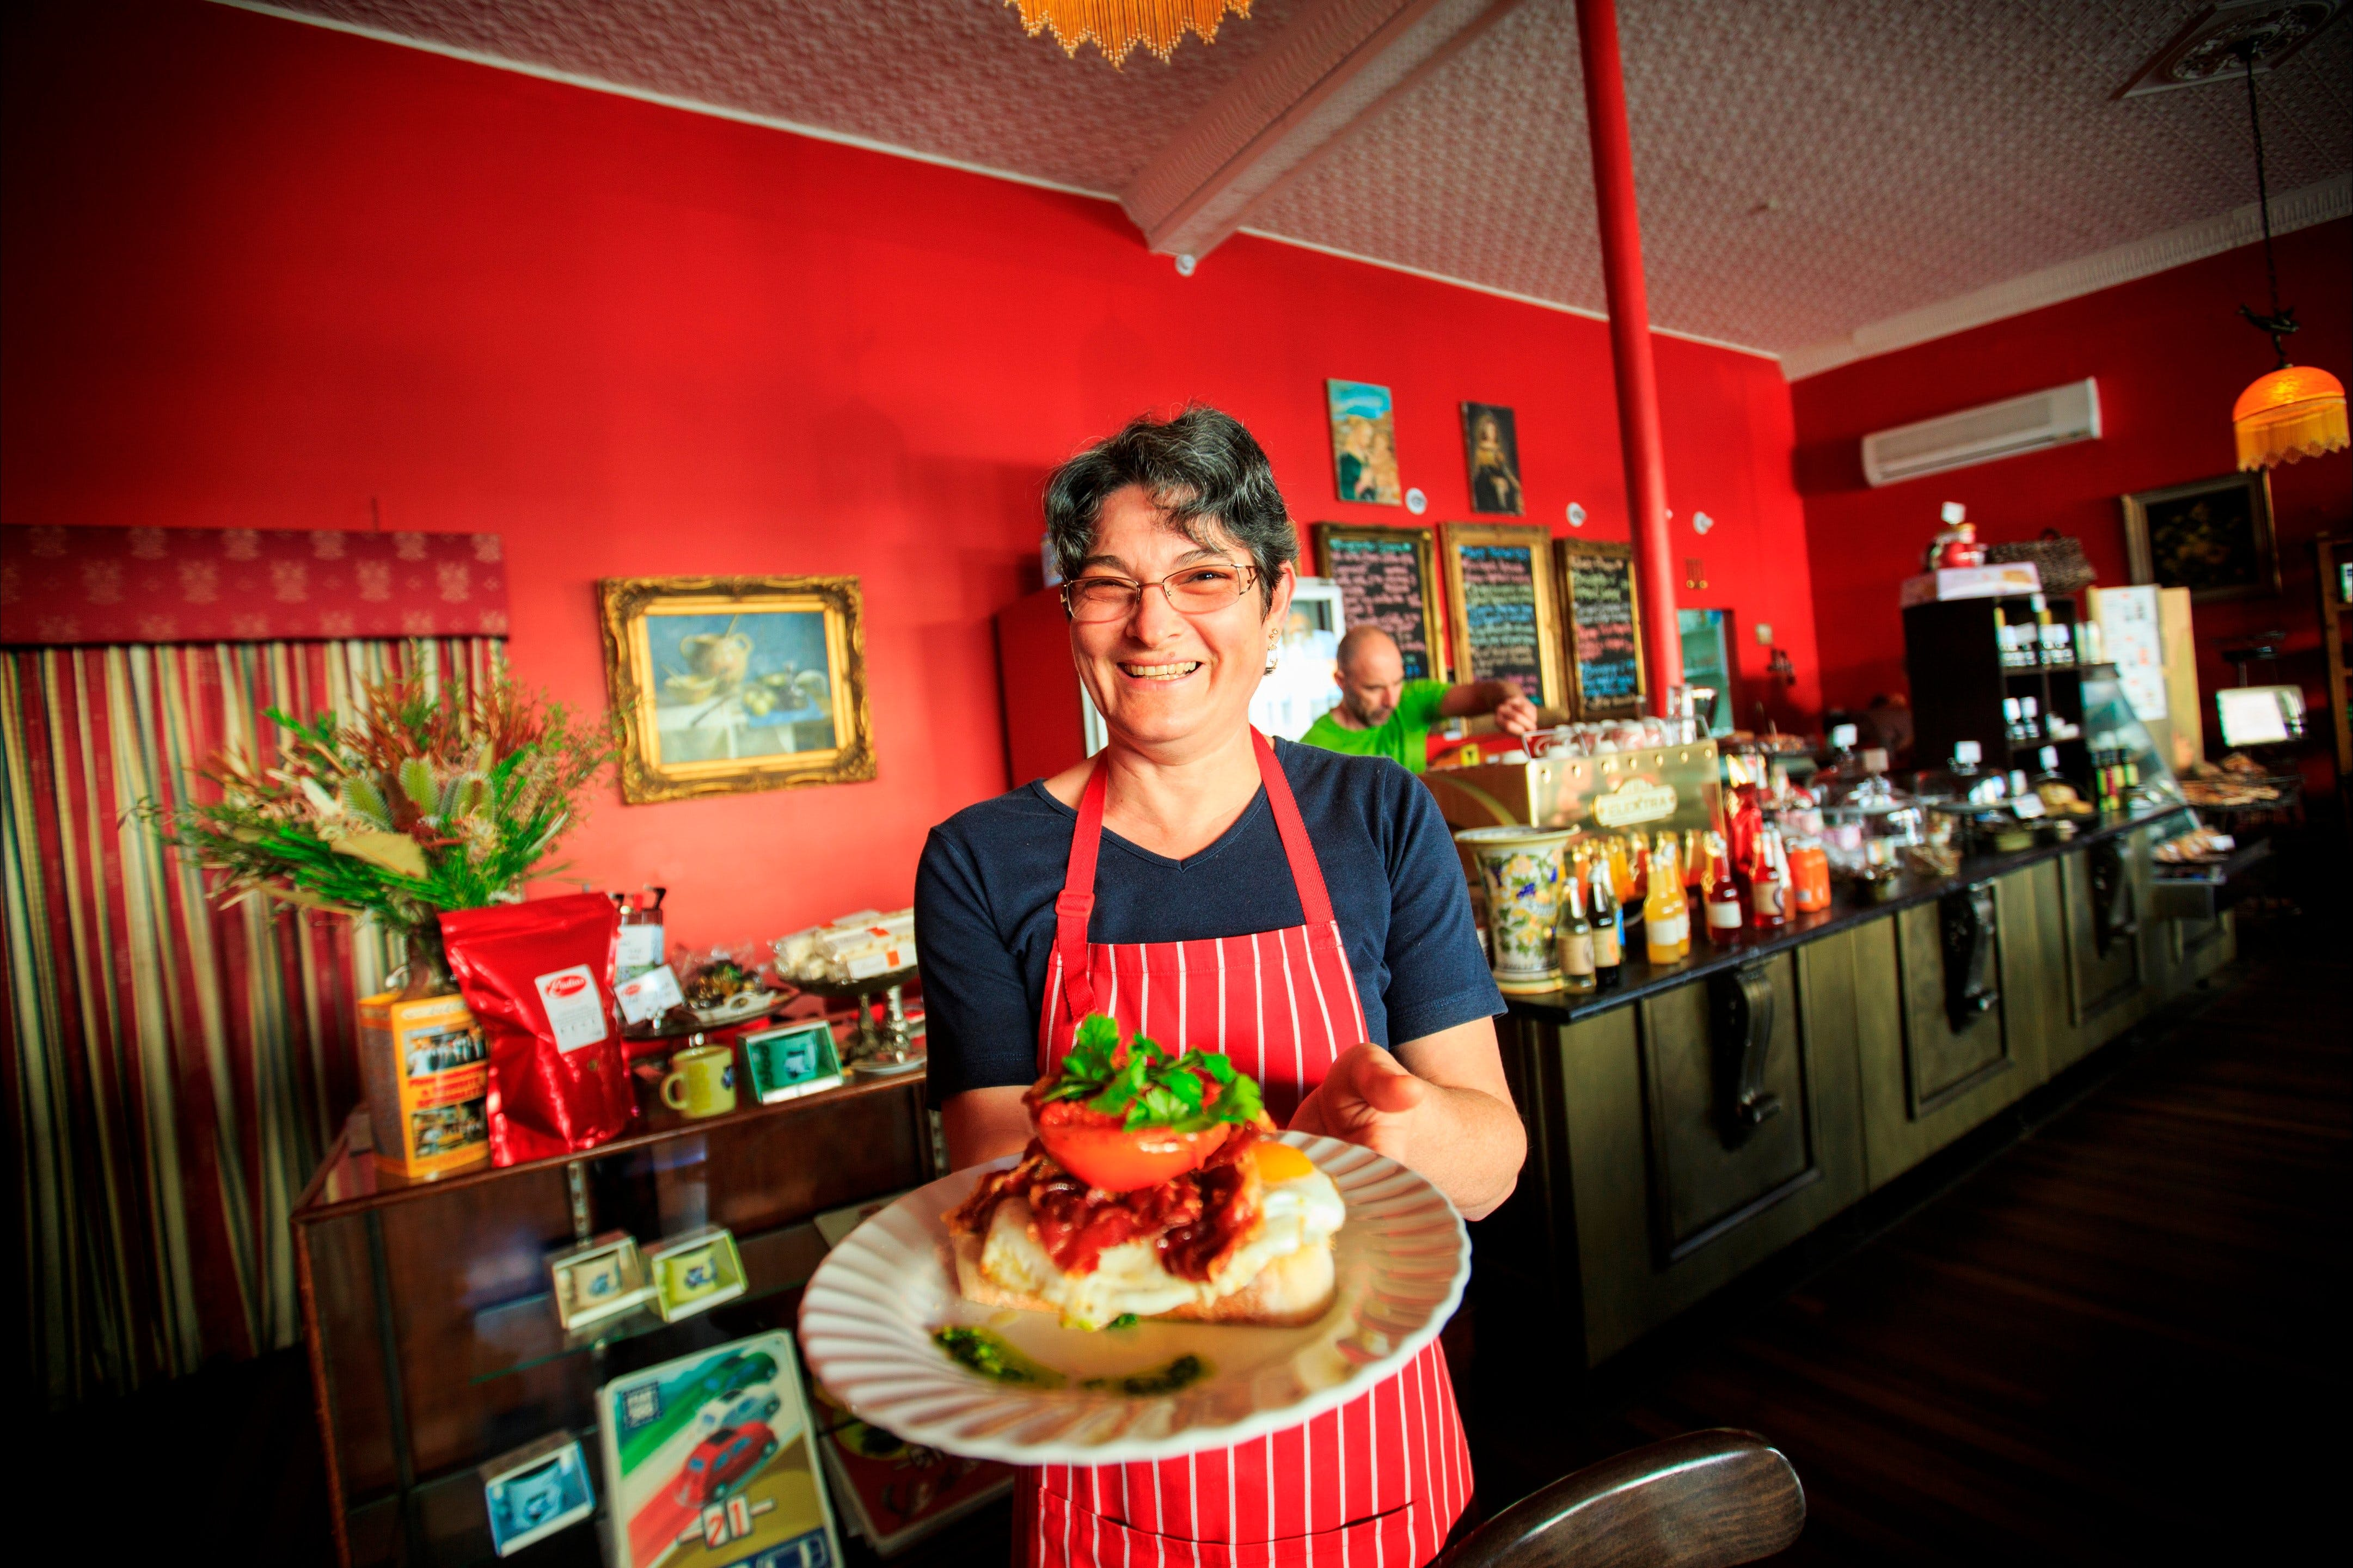 Gympie Region Food Trail - Victoria Tourism